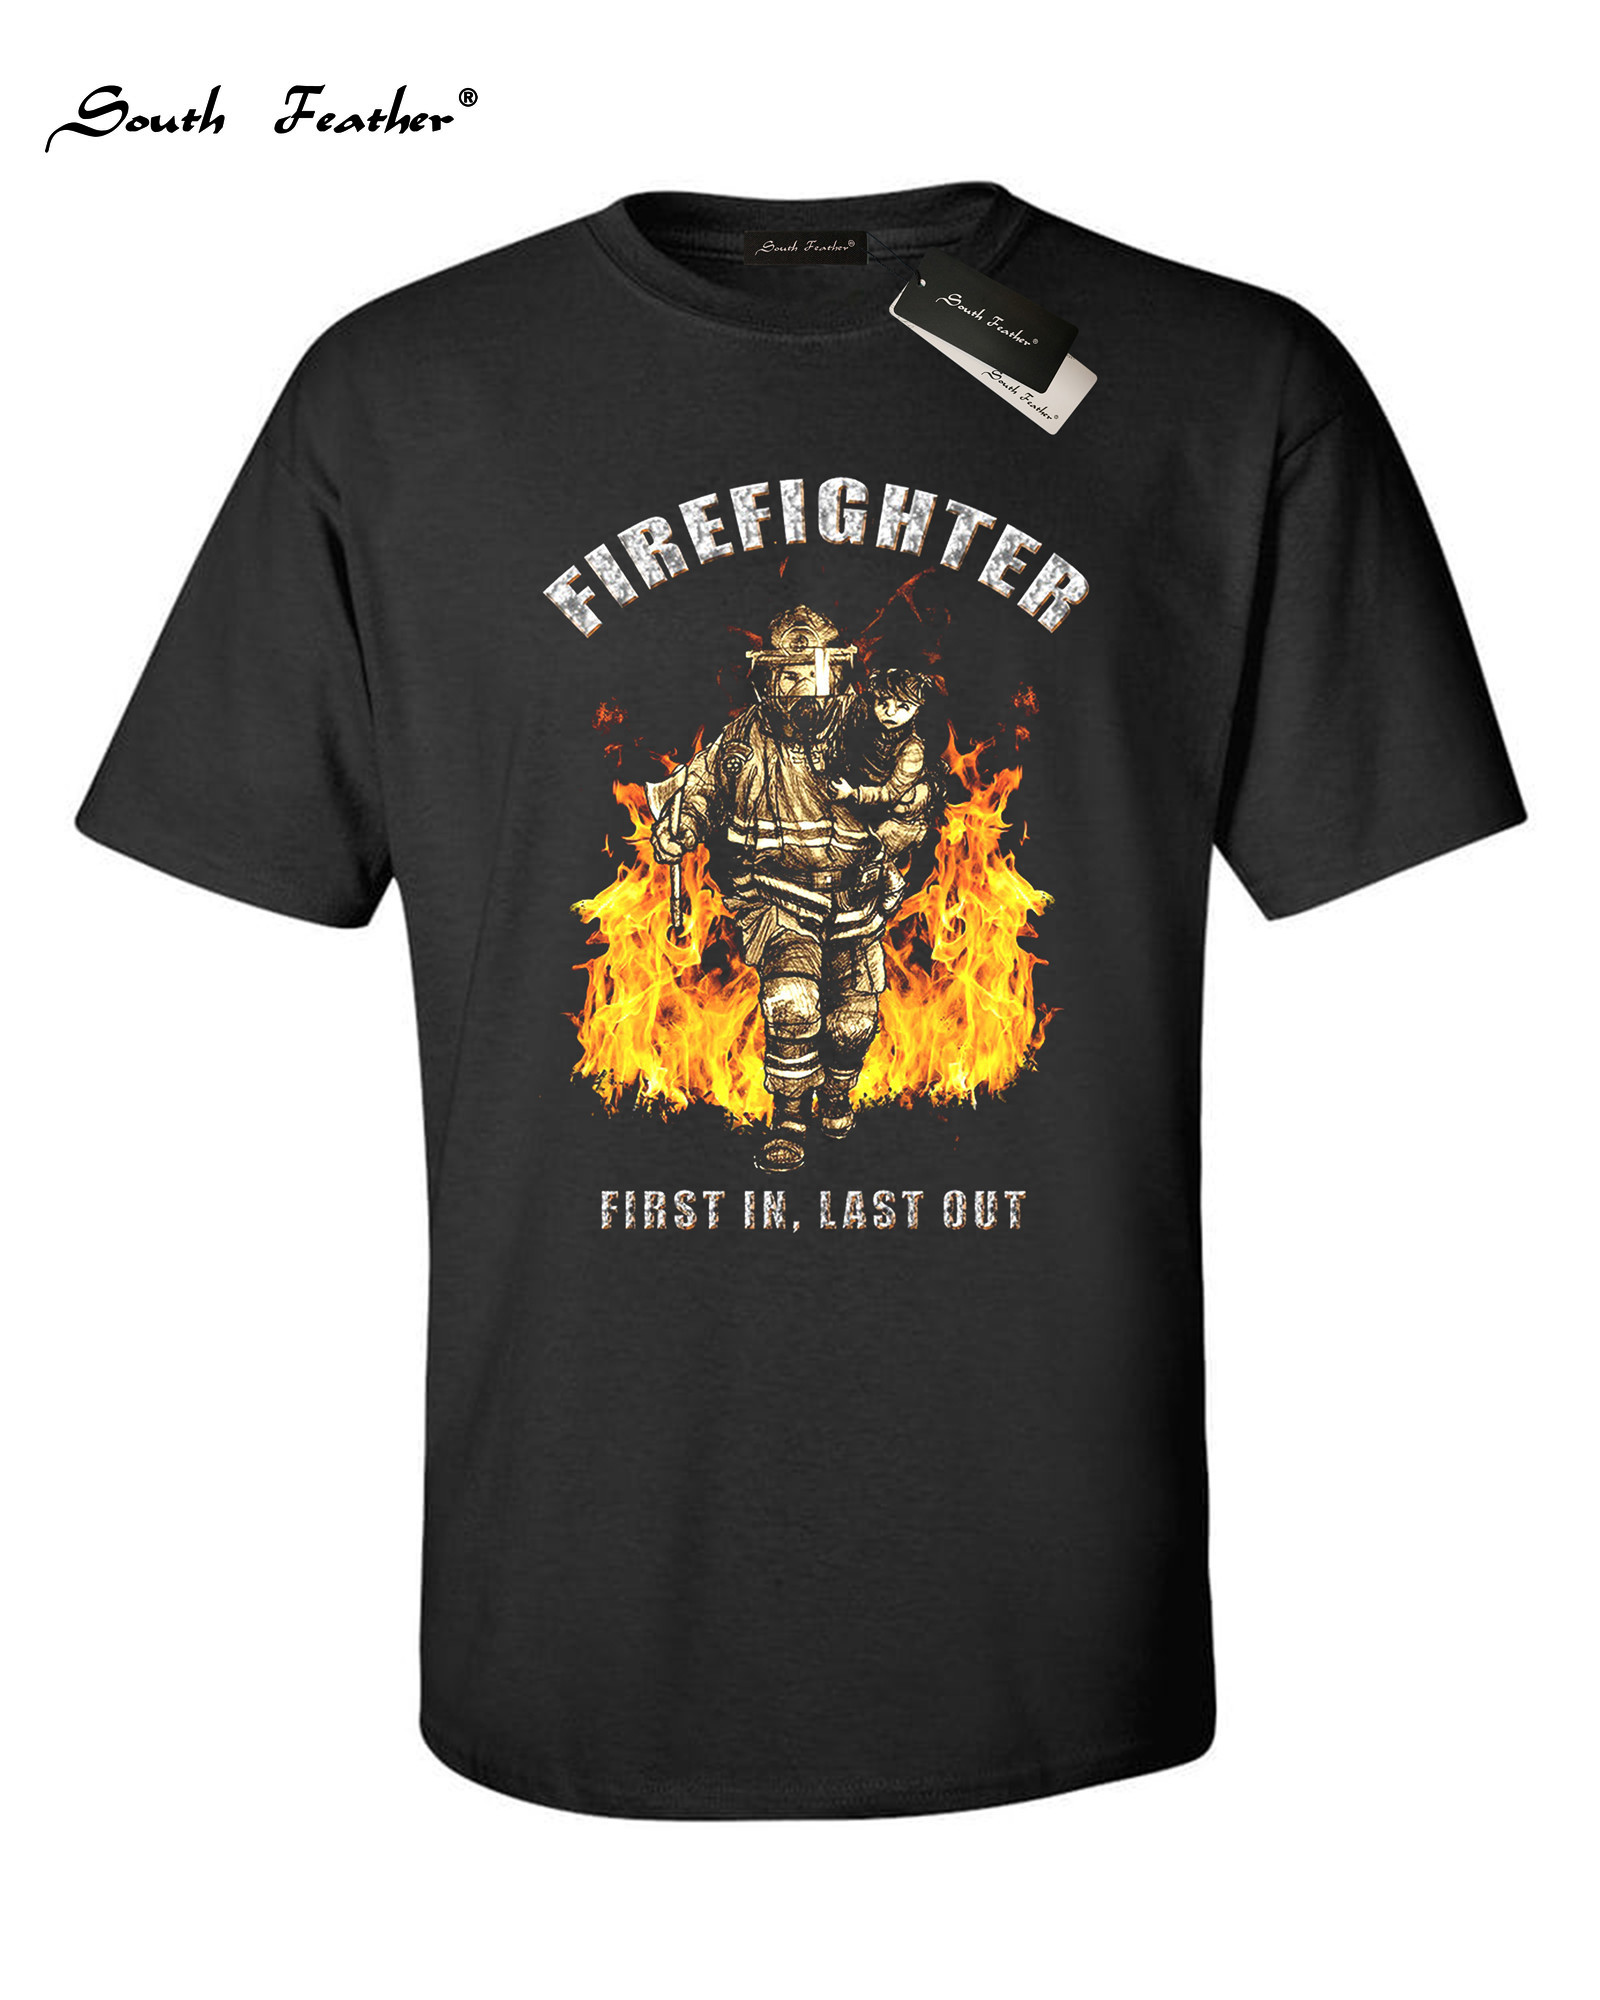 New Men Summer Classic T-Shirt Firefighter <font><b>Cult</b></font> Shirt Fireman Firefighter Rescue I Am A Firefighter T Shirt,Cool Fireman <font><b>TShirts</b></font> image